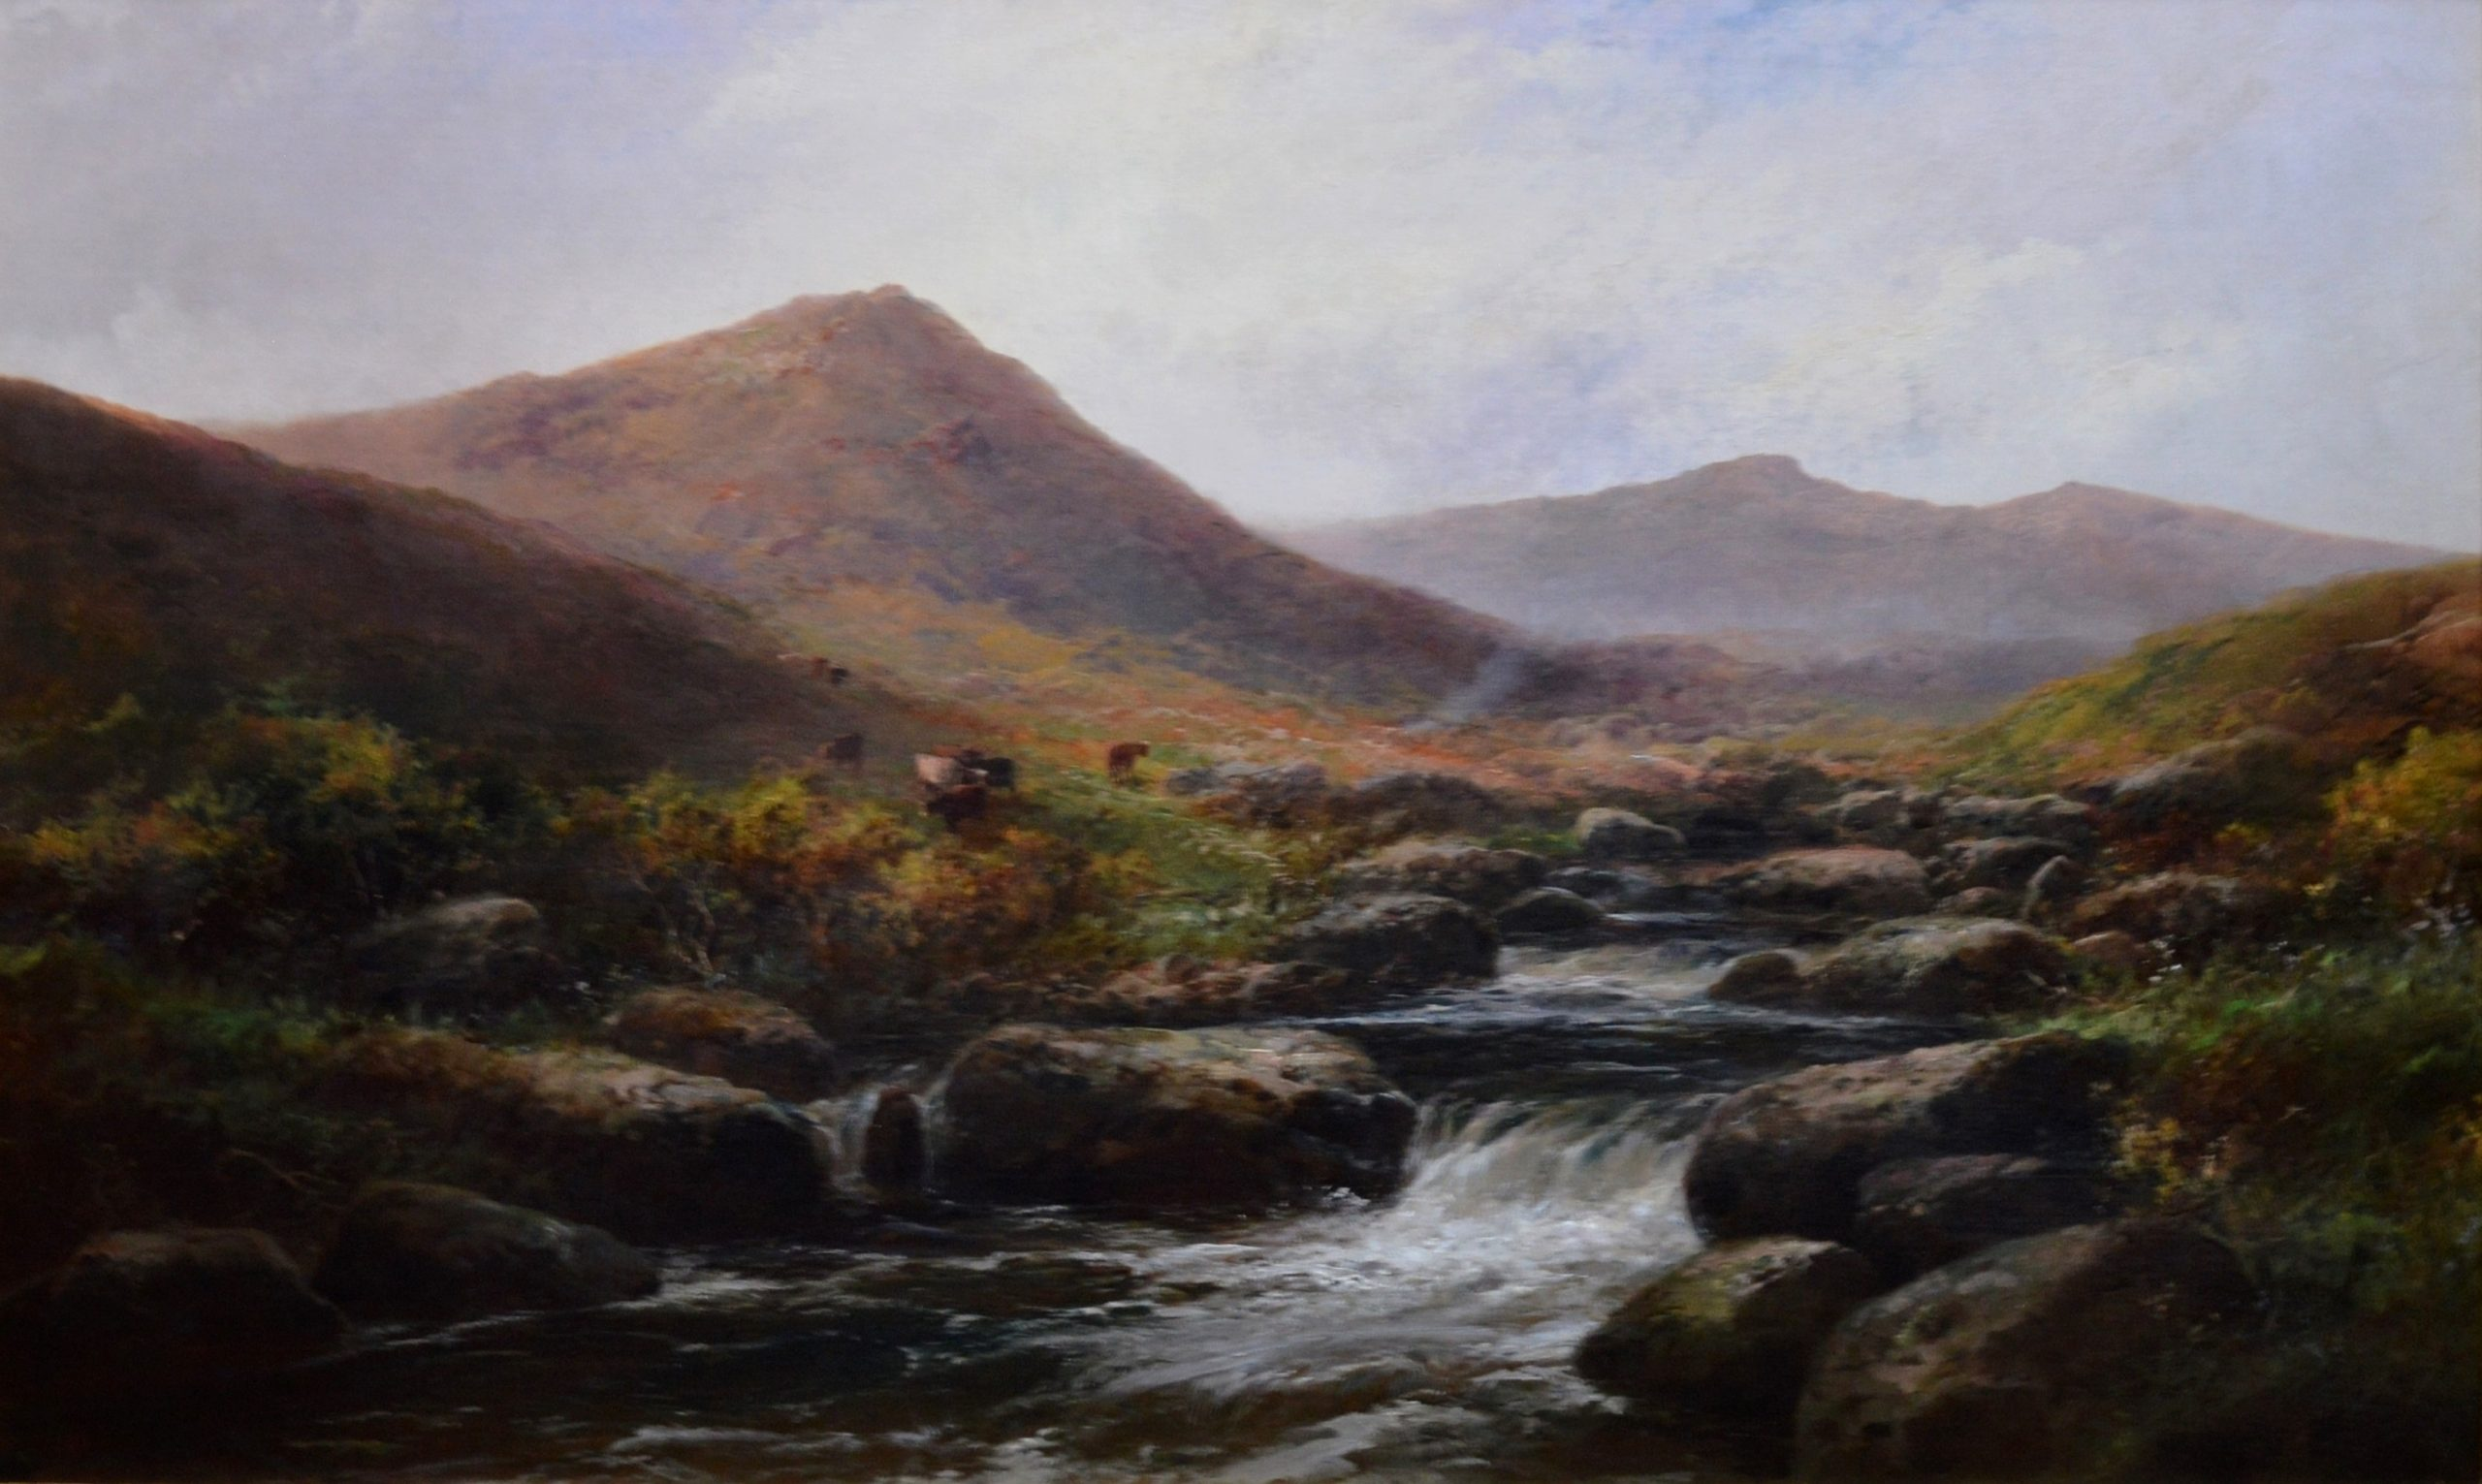 On the Tavy - 19th Century Landscape Oil Painting of Dartmoor Image